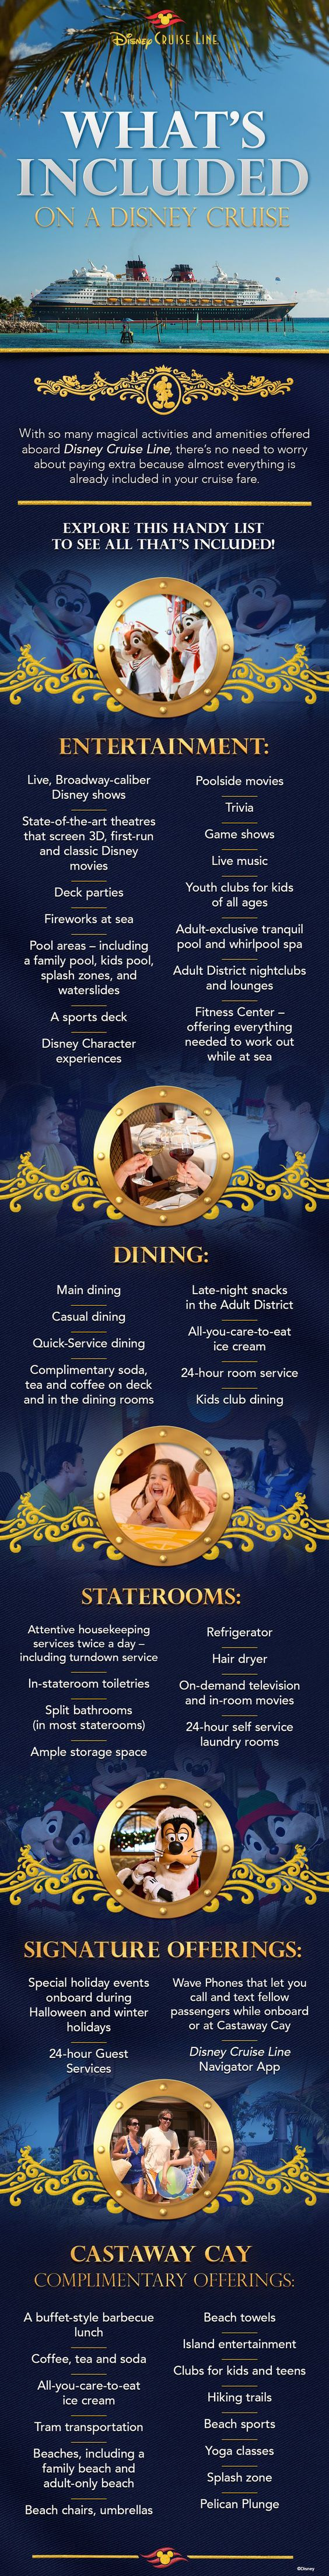 With so many magical activities and amenities offered aboard Disney Cruise Line, there's no need to worry about paying extra because almost everything is already included in your cruise fare. [ BookingEntertainment.com ] #cruise